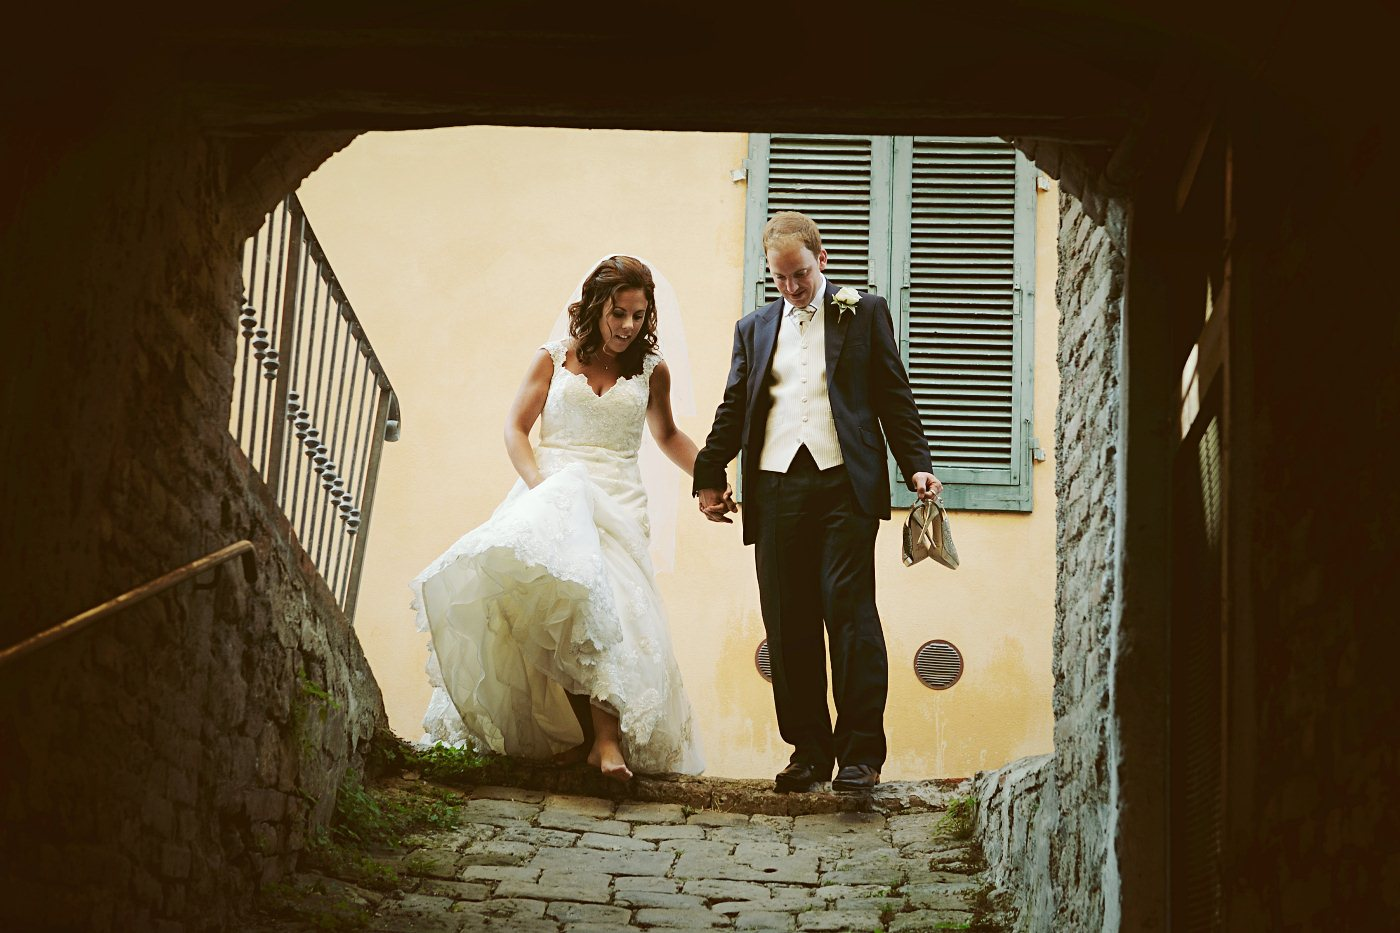 wedding photographer pisa_14.jpg